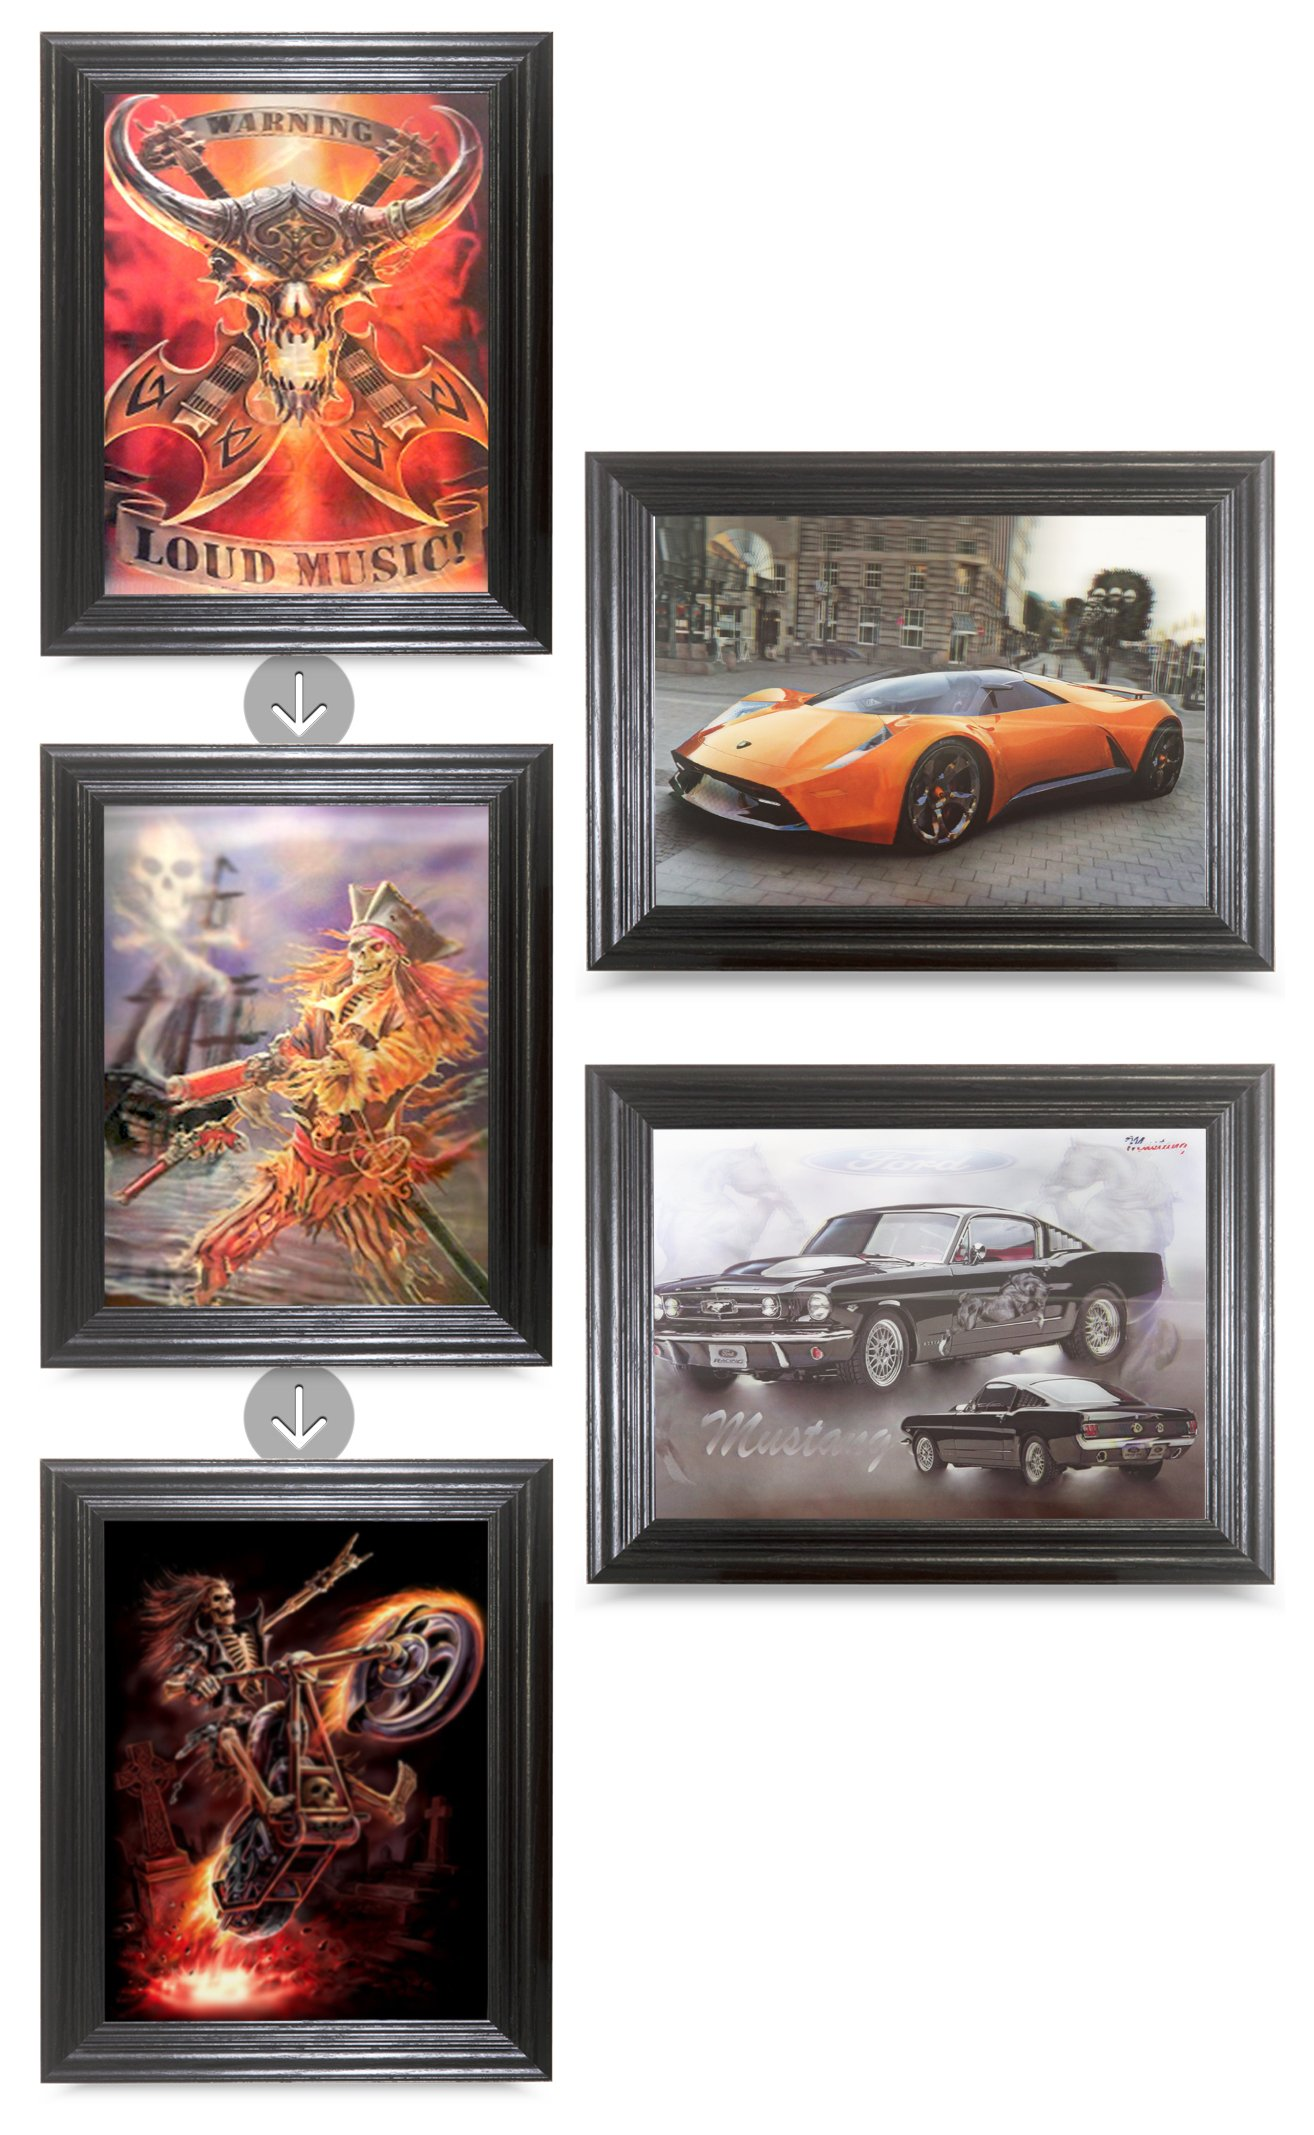 Flipping Pictures Room Bundle Holographic Art-MULTIPLE PICTURES IN ONE-Light up your walls-Lenticular Artwork-HOLOGRAM Images- by THOSE FLIPPING PICTURES (Framed, Rock-N-Roll Bundle)